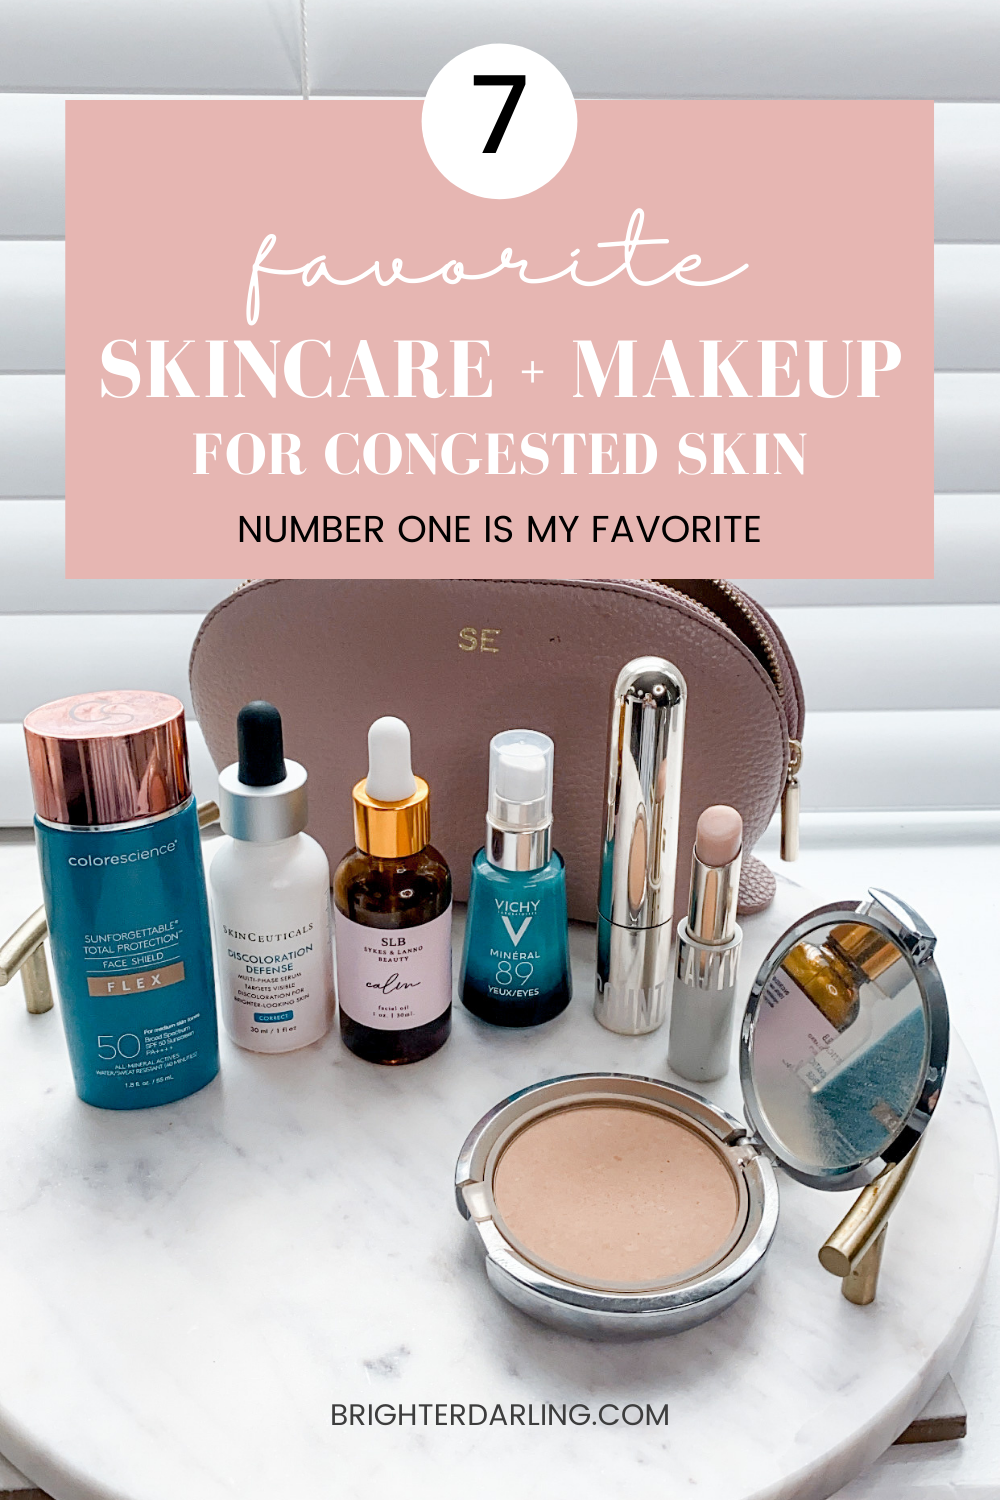 7 Favorite Skincare And Makeup For Congested Skin | Best Facial Oil Congested Skin | Best Mineral SPF Tinted Moisturizer Acne Prone Skin | Best Clean Setting Powder Acne Prone Skin